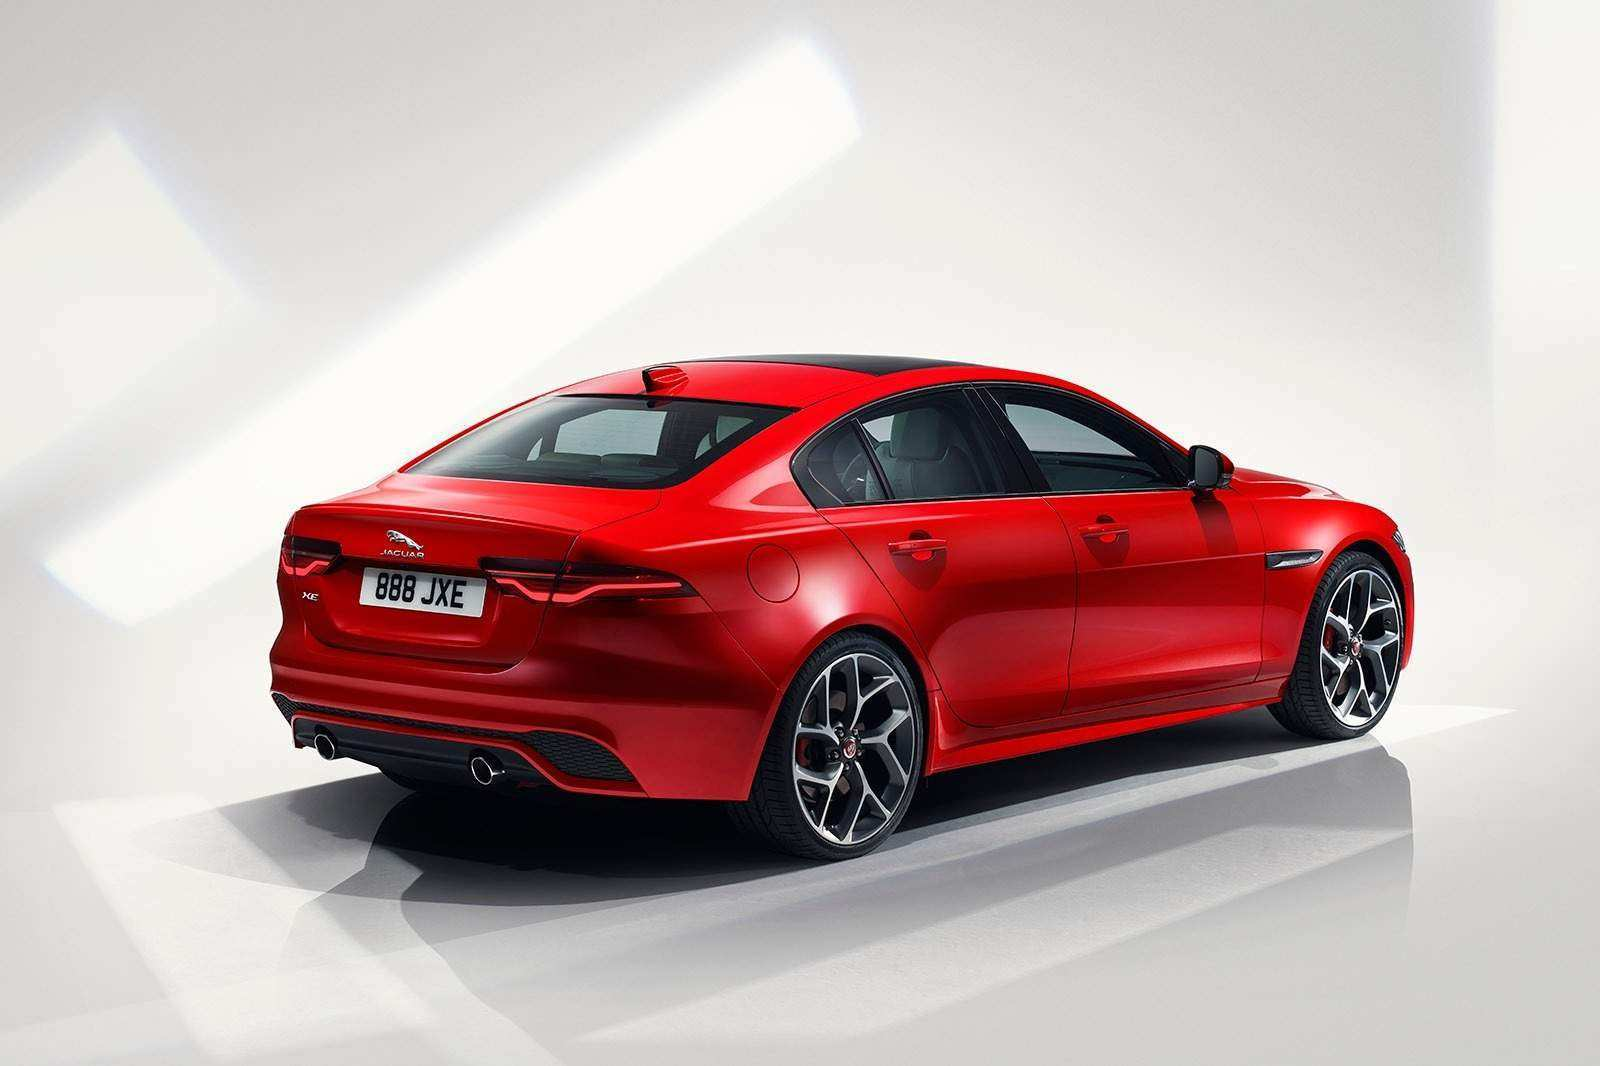 94 Gallery of Jaguar Xe 2020 Launch Rumors by Jaguar Xe 2020 Launch